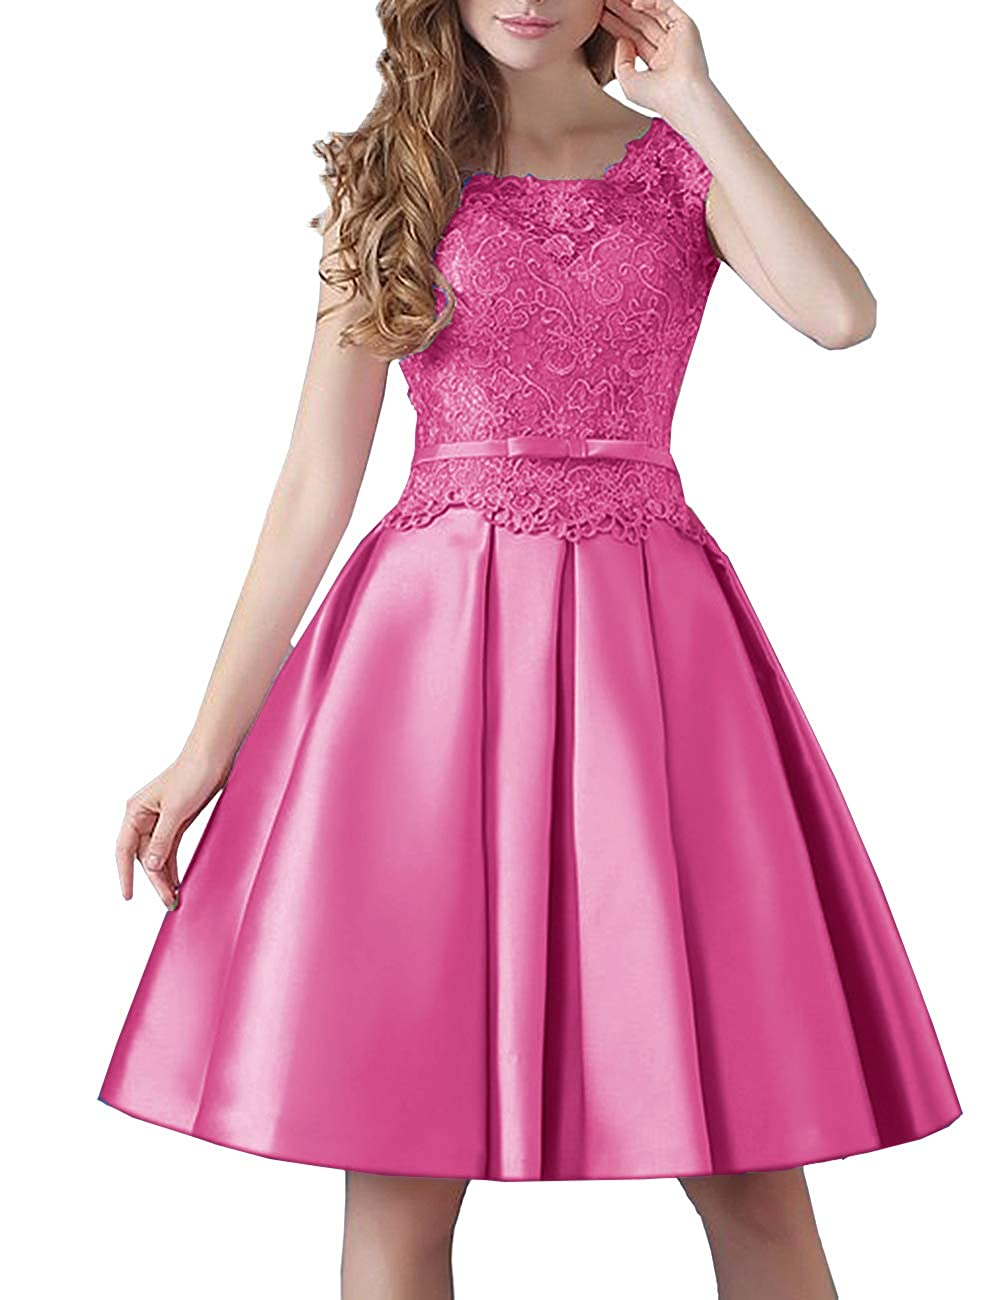 Hot Pink Uther Prom KneeLength Lace Cocktail Dress Short Stain Homecoming Dresses for Girls